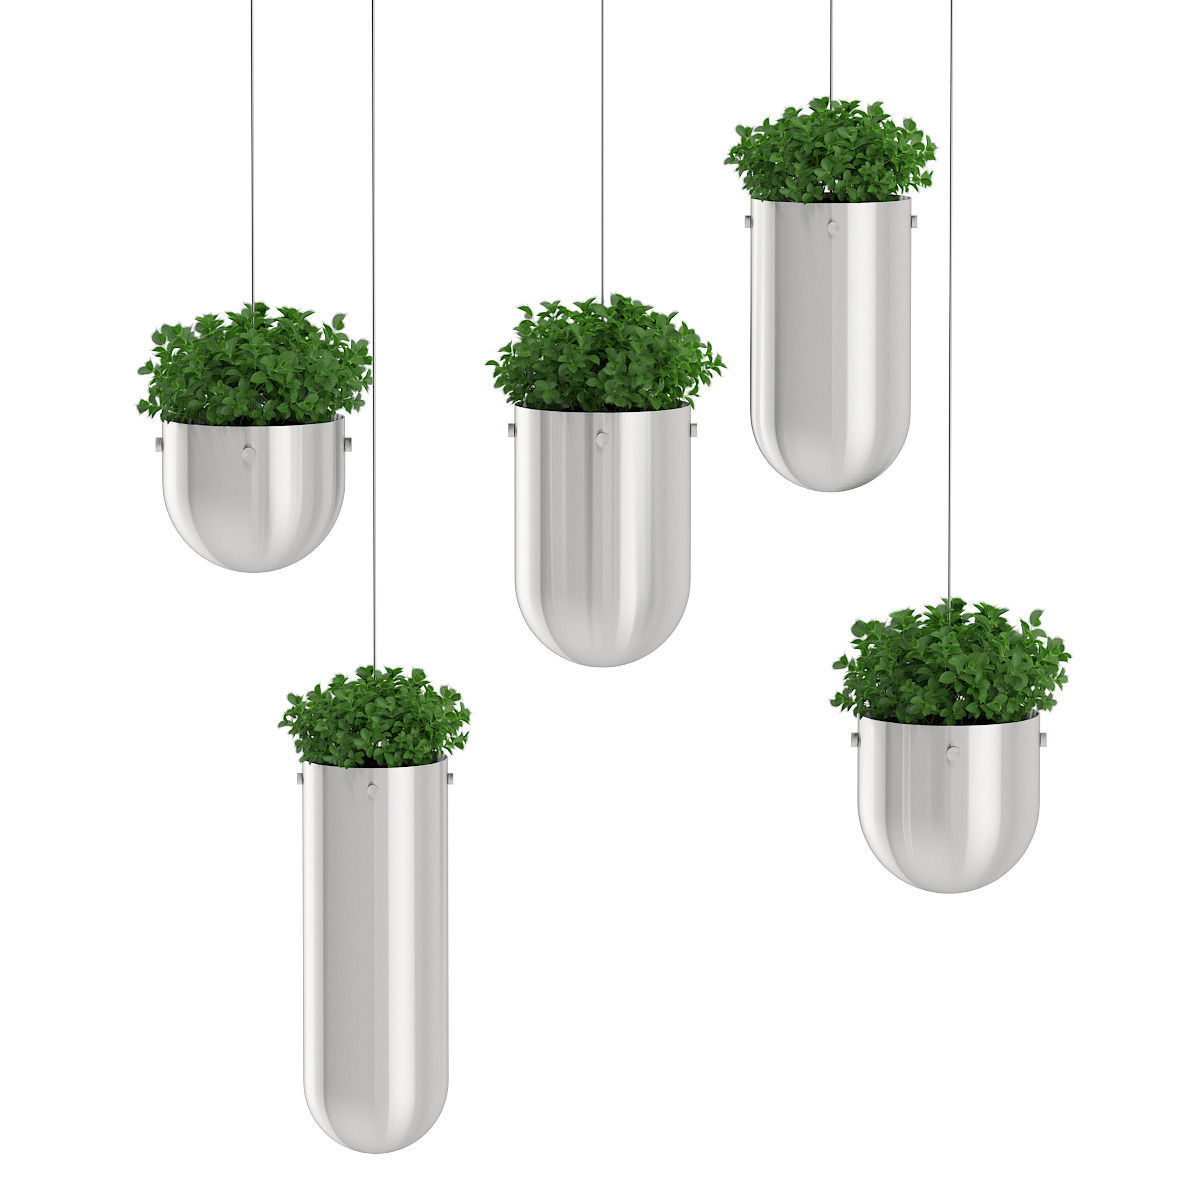 Plants In Metal Hanging Pots 3d Model Max Obj Fbx C4d Mtl